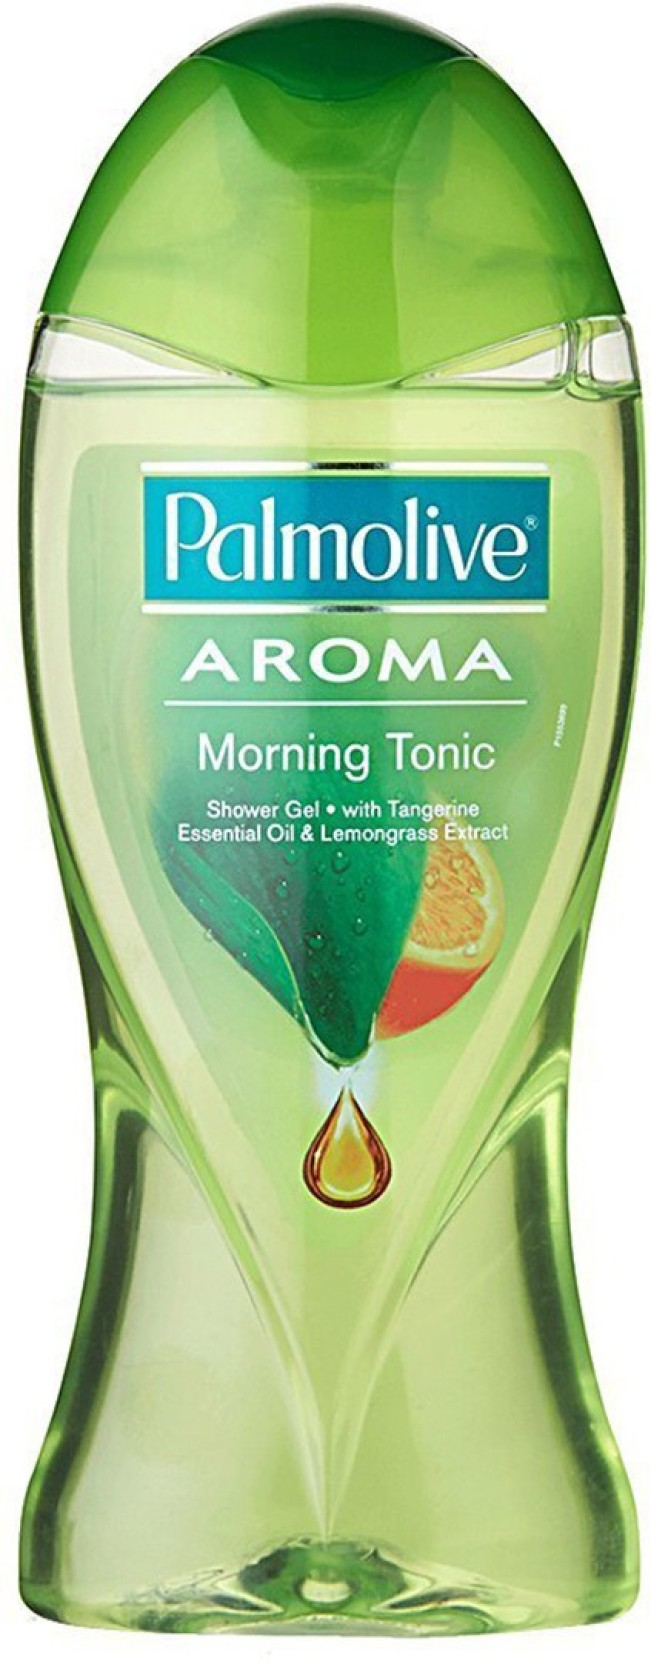 Palmolive Shower Gel Morning Tonic Refill 450m Daftar Harga Showergel Sensual 450ml Aroma Add To Basket